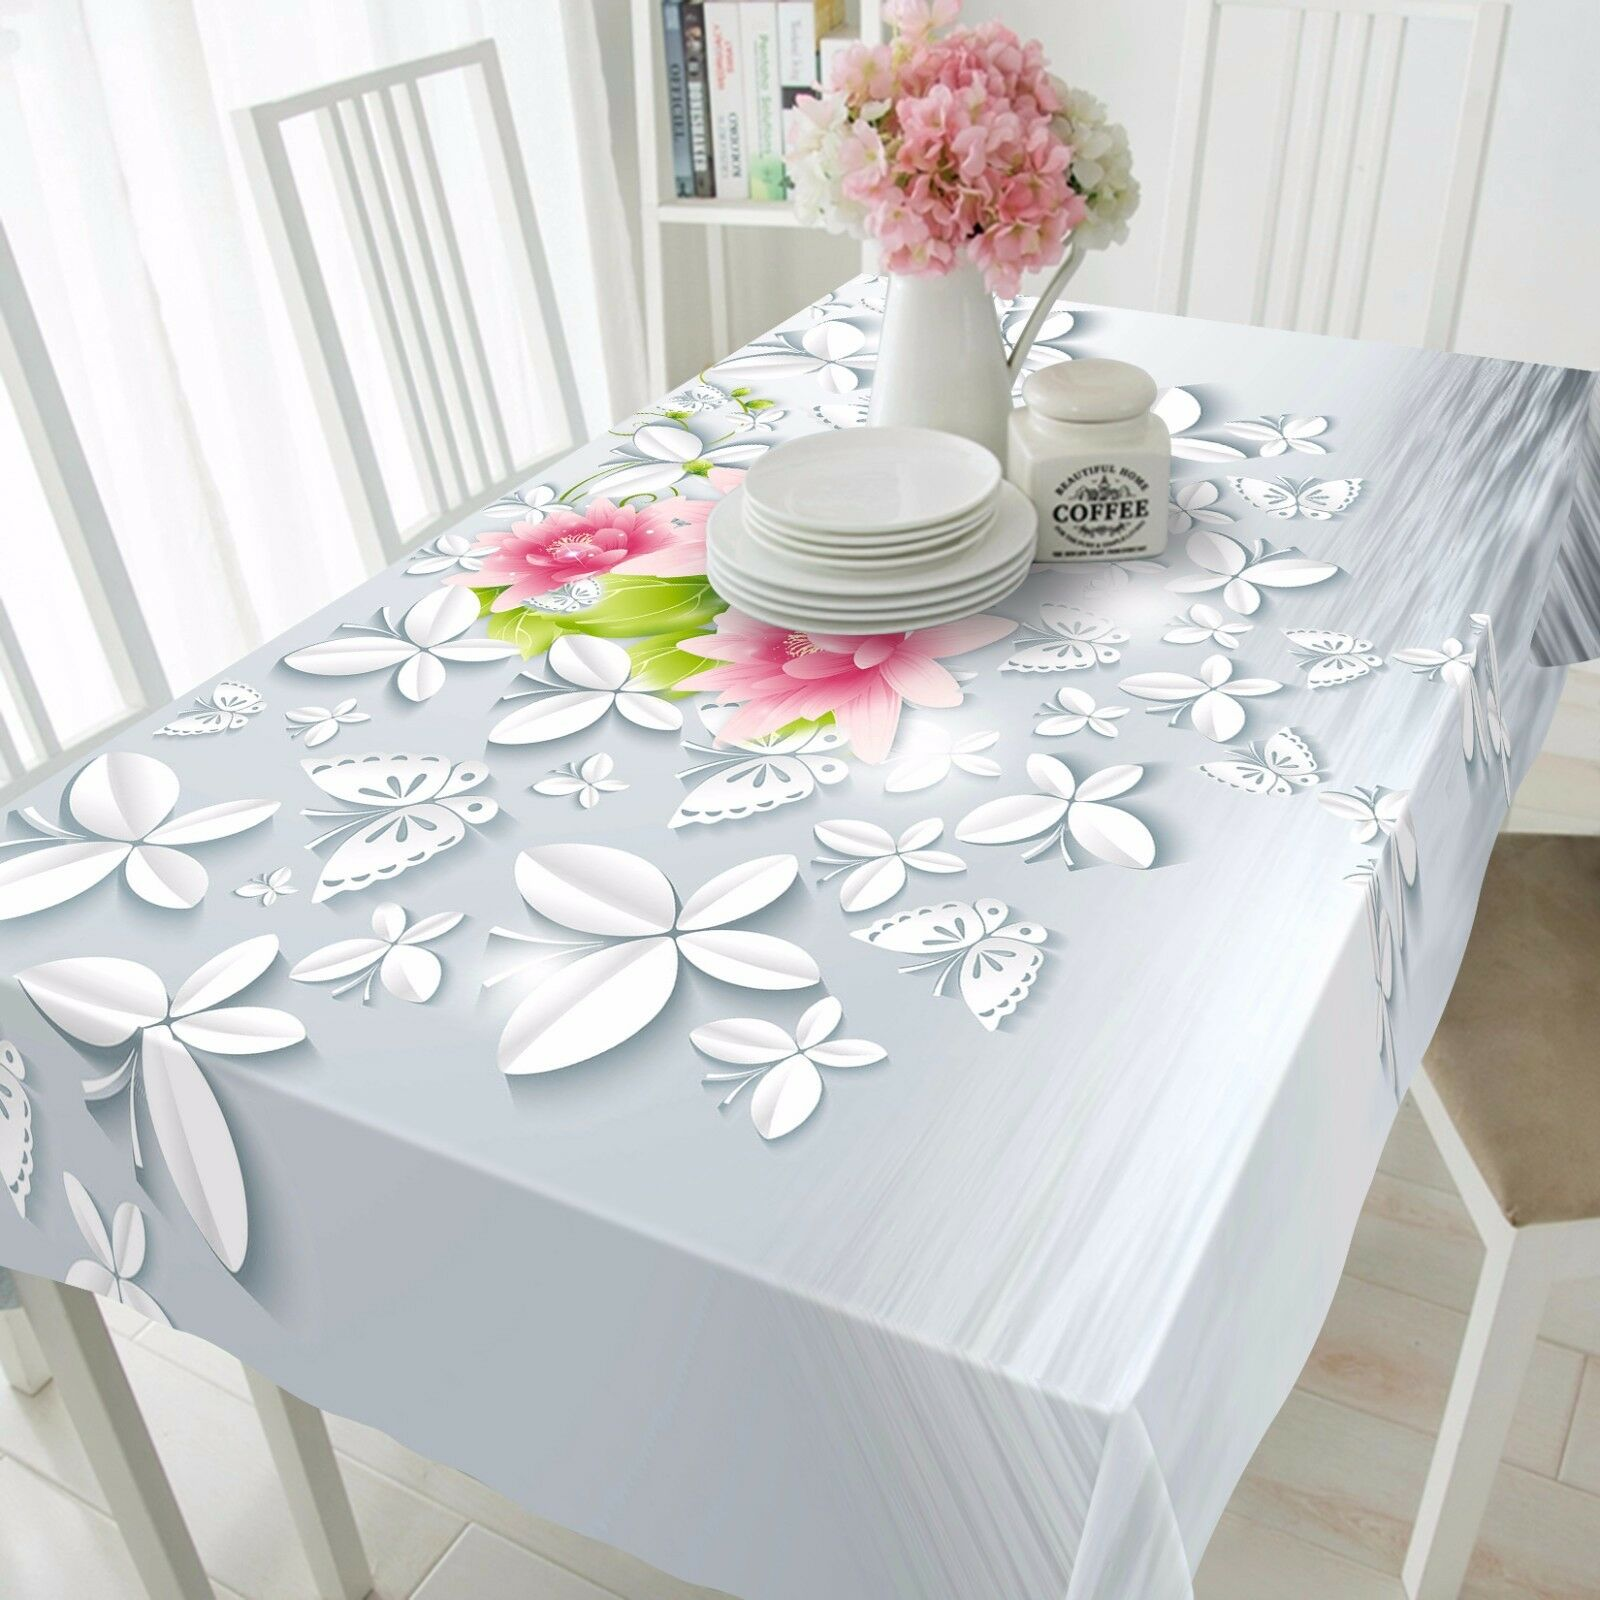 3D Flower 4436 Tablecloth Table Cover Cloth Birthday Party Event AJ WALLPAPER AU